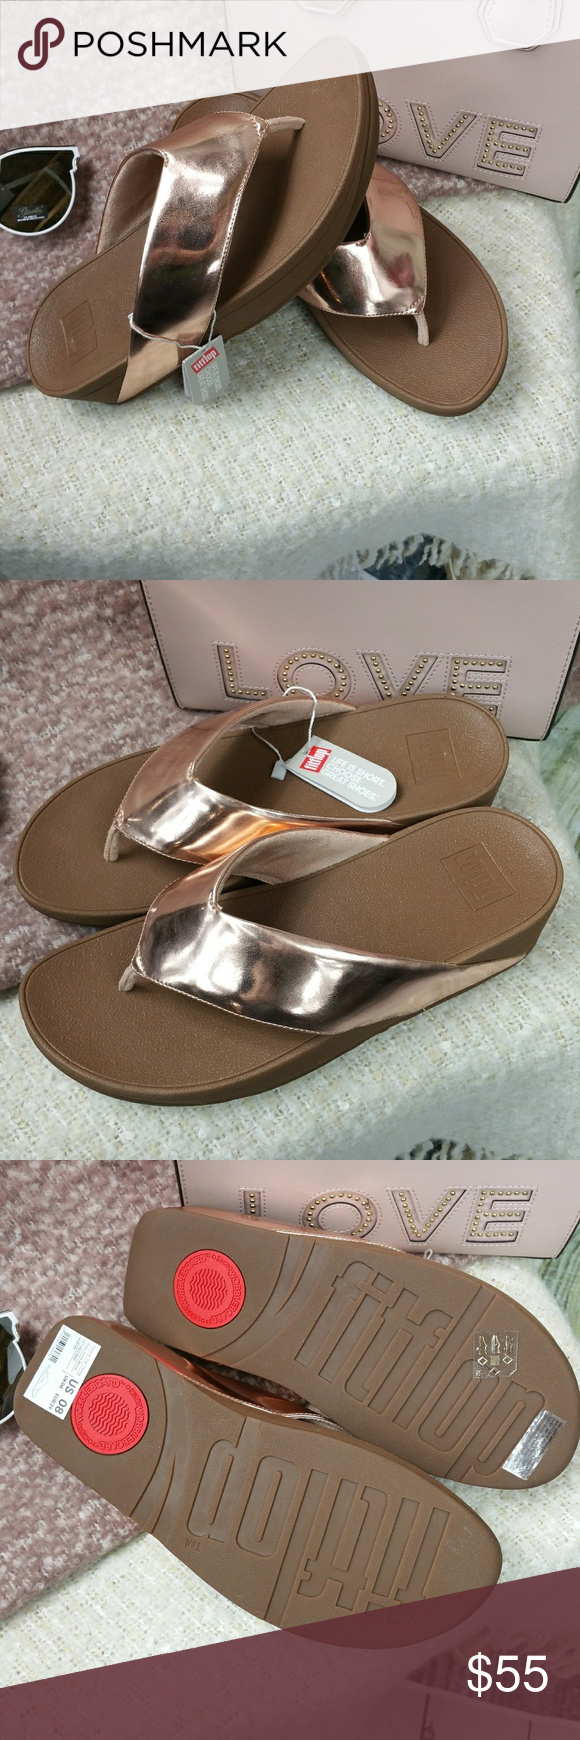 b0dc05c2d8d9a9 NWT Fit Flops ROSE GOLD sandals FITFLOP Swoop 8 Size 8 - 1 ONLY FitFlop ROSE